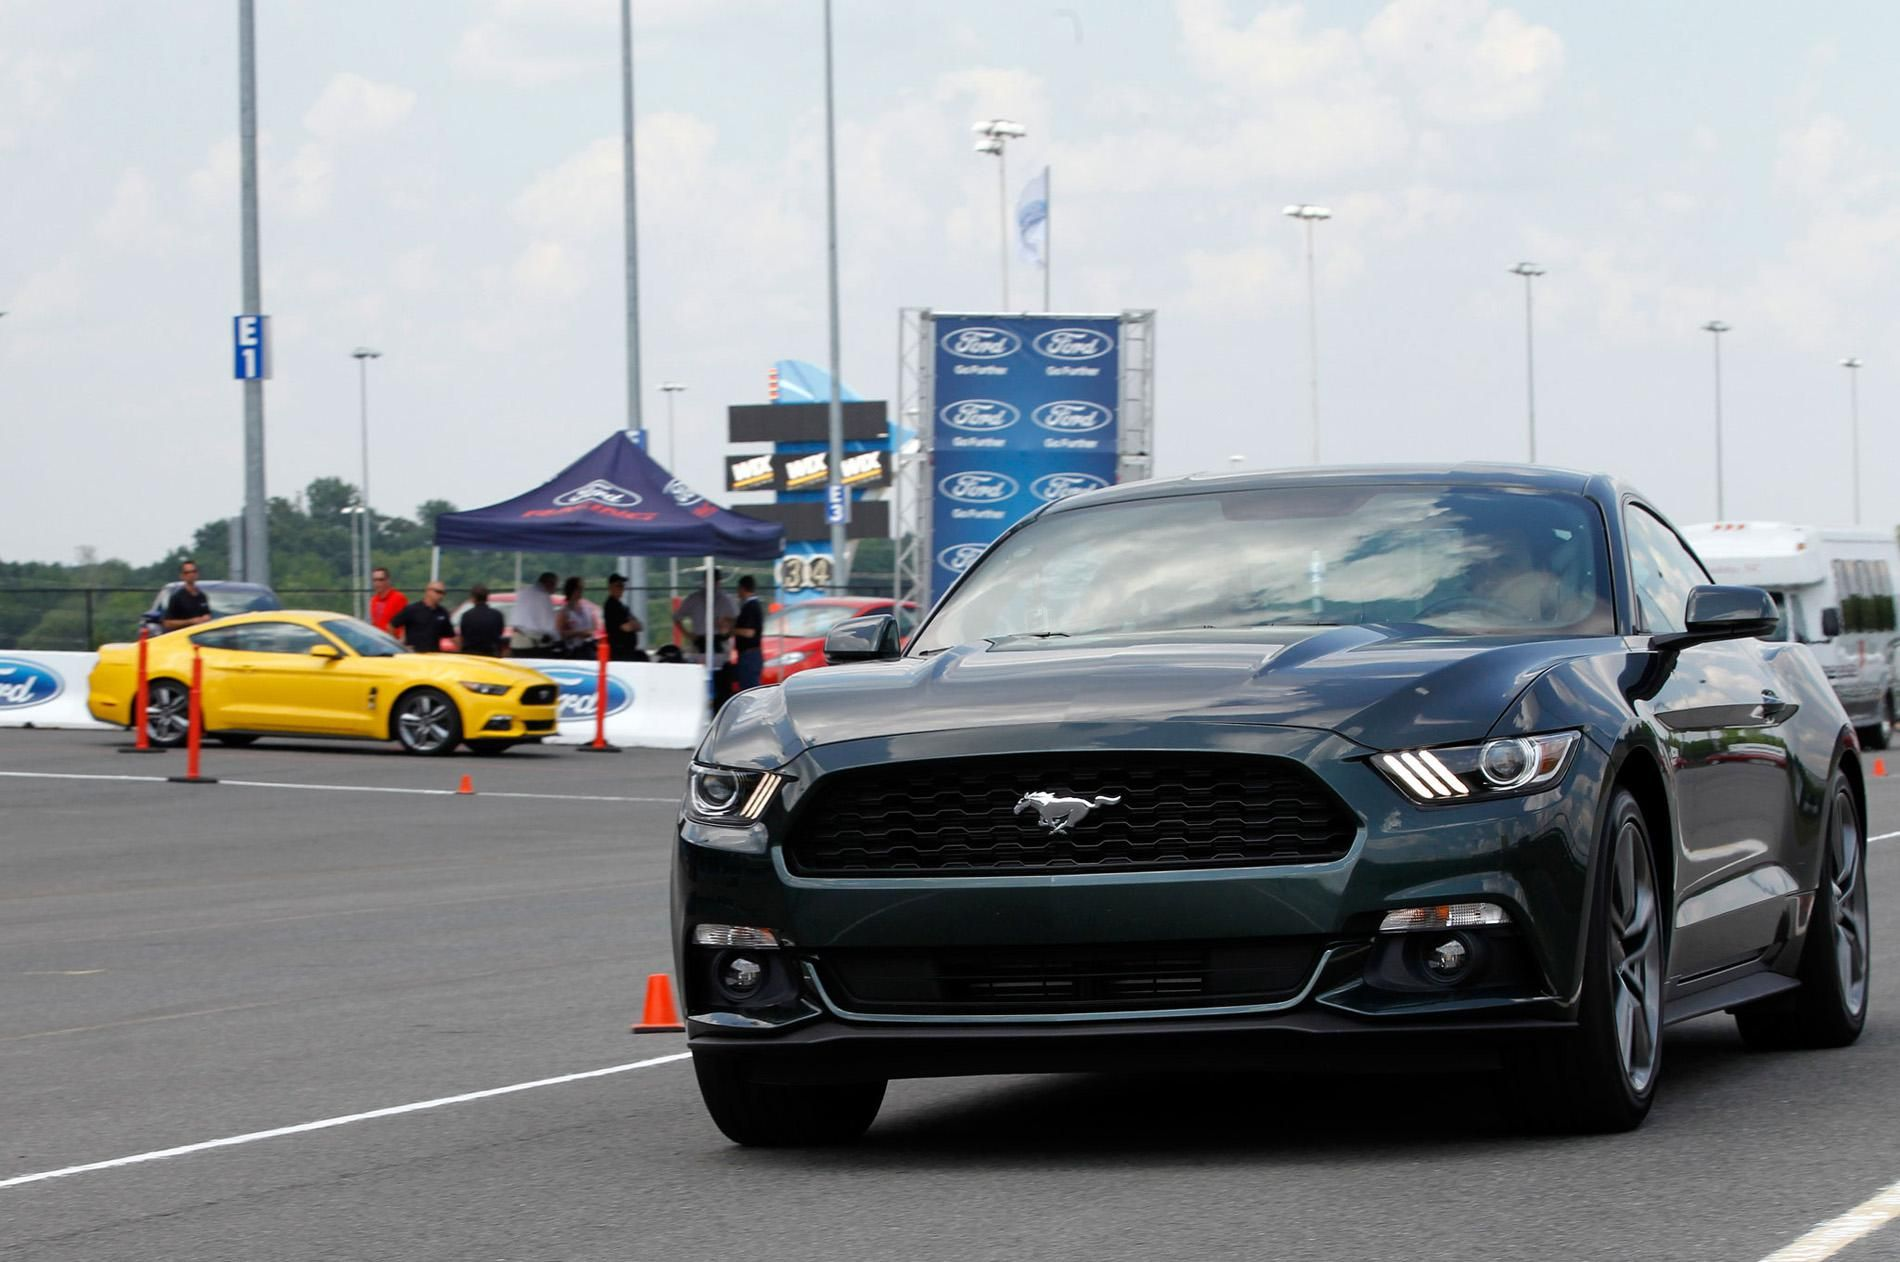 2015 Ford Mustang V6 (With images) 2015 ford mustang